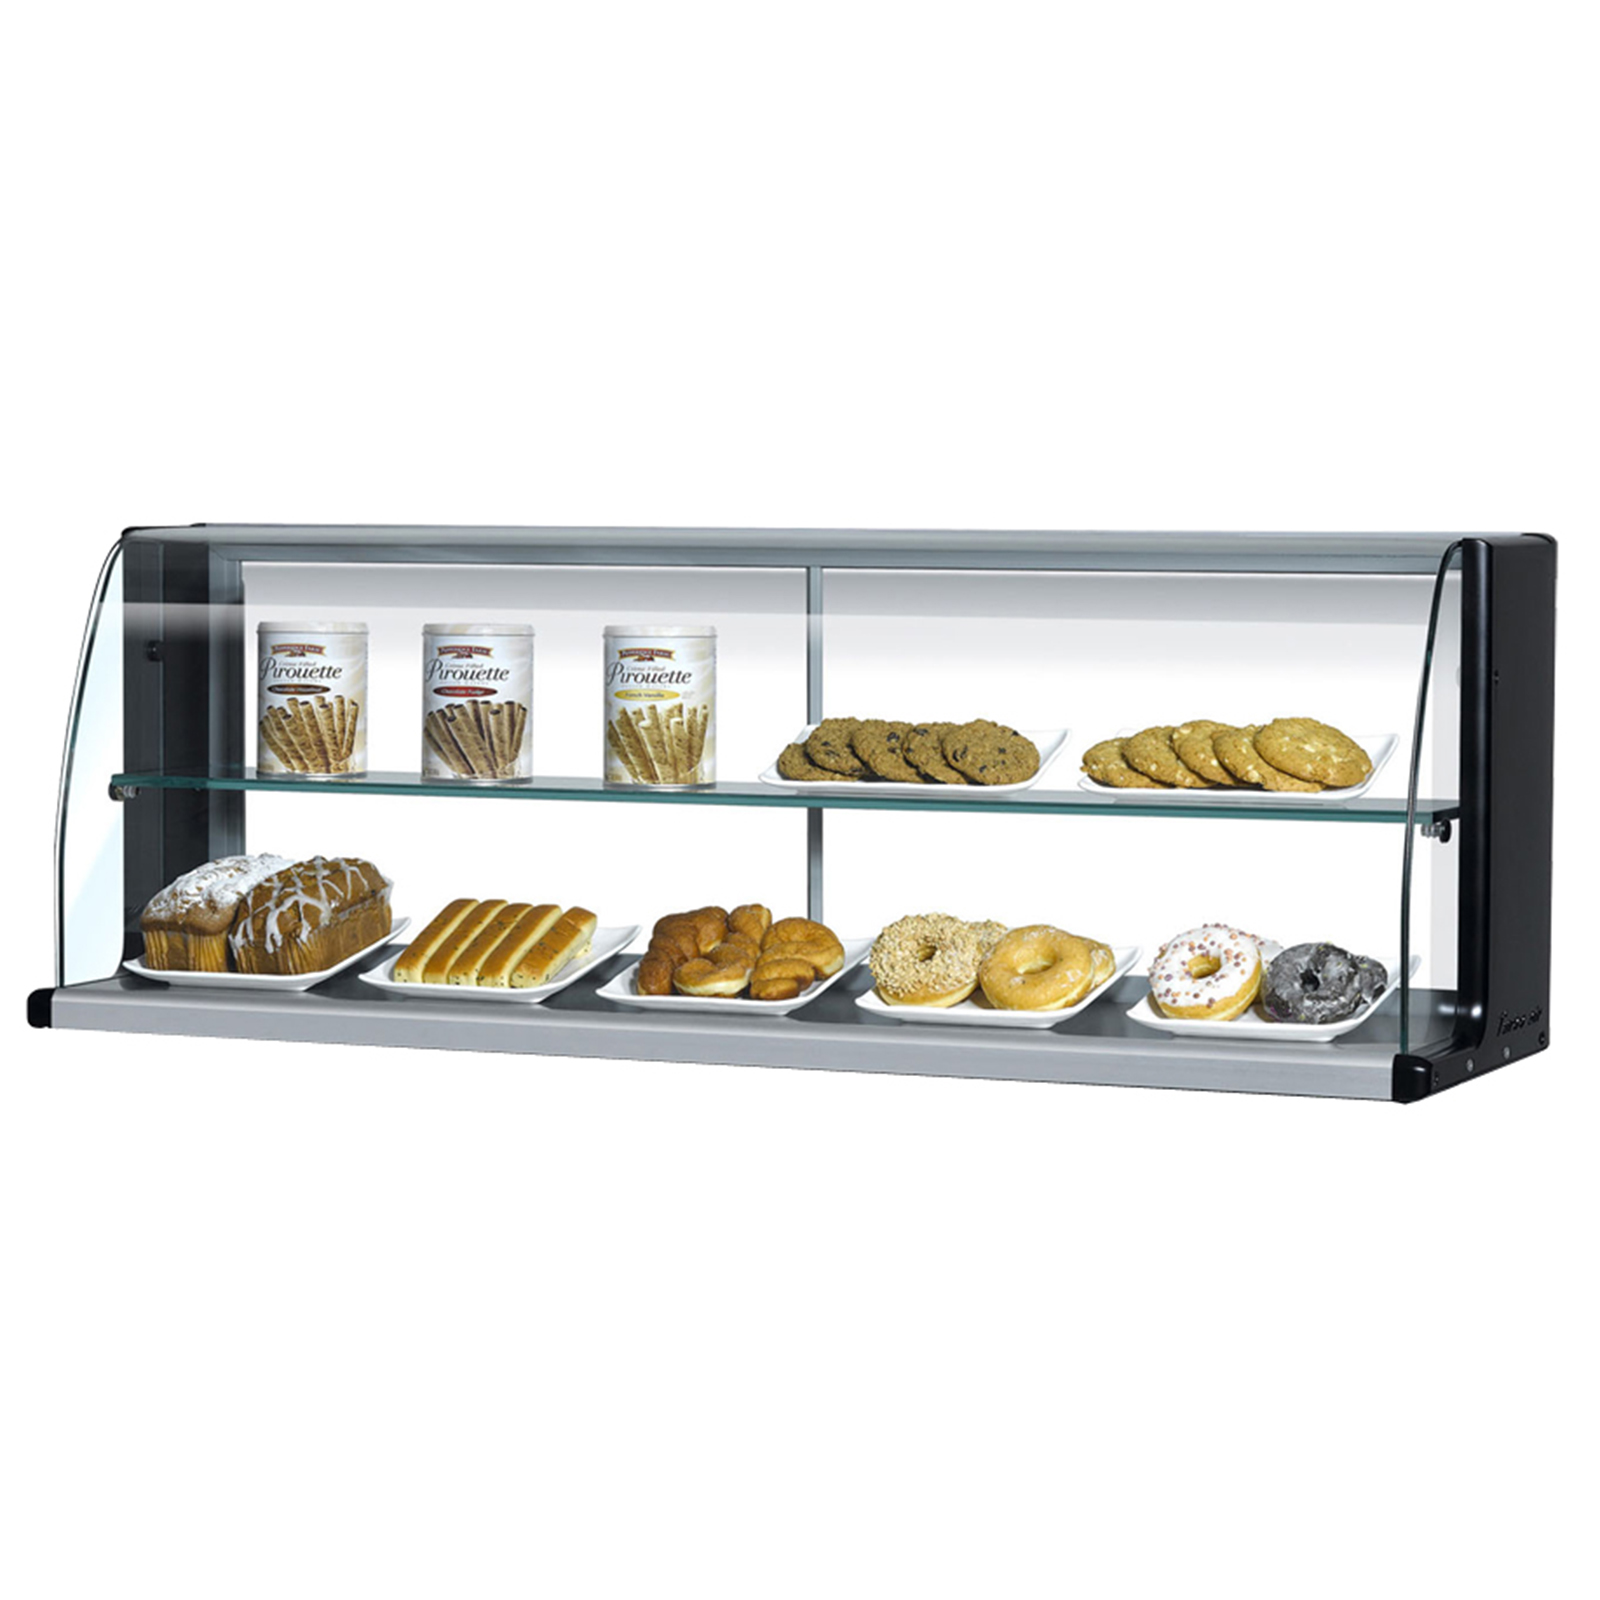 Turbo Air TOMD-75HW(B) display case, non-refrigerated countertop